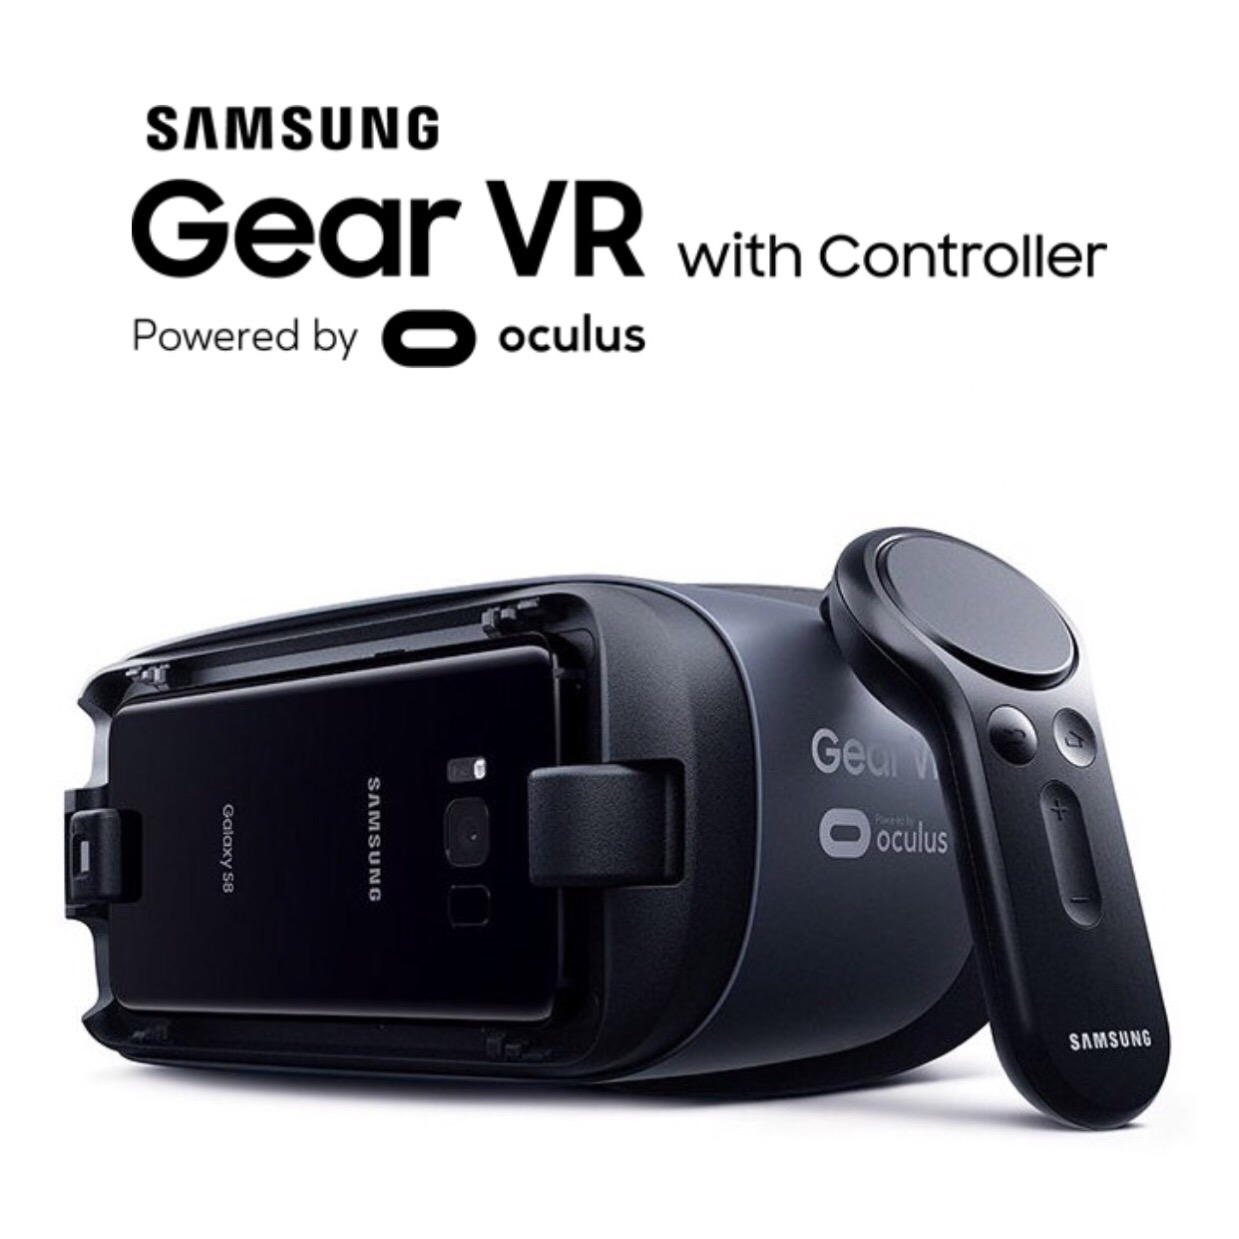 Samsung Gear VR review: Is Samsung Gear VR (2016) - GS7s